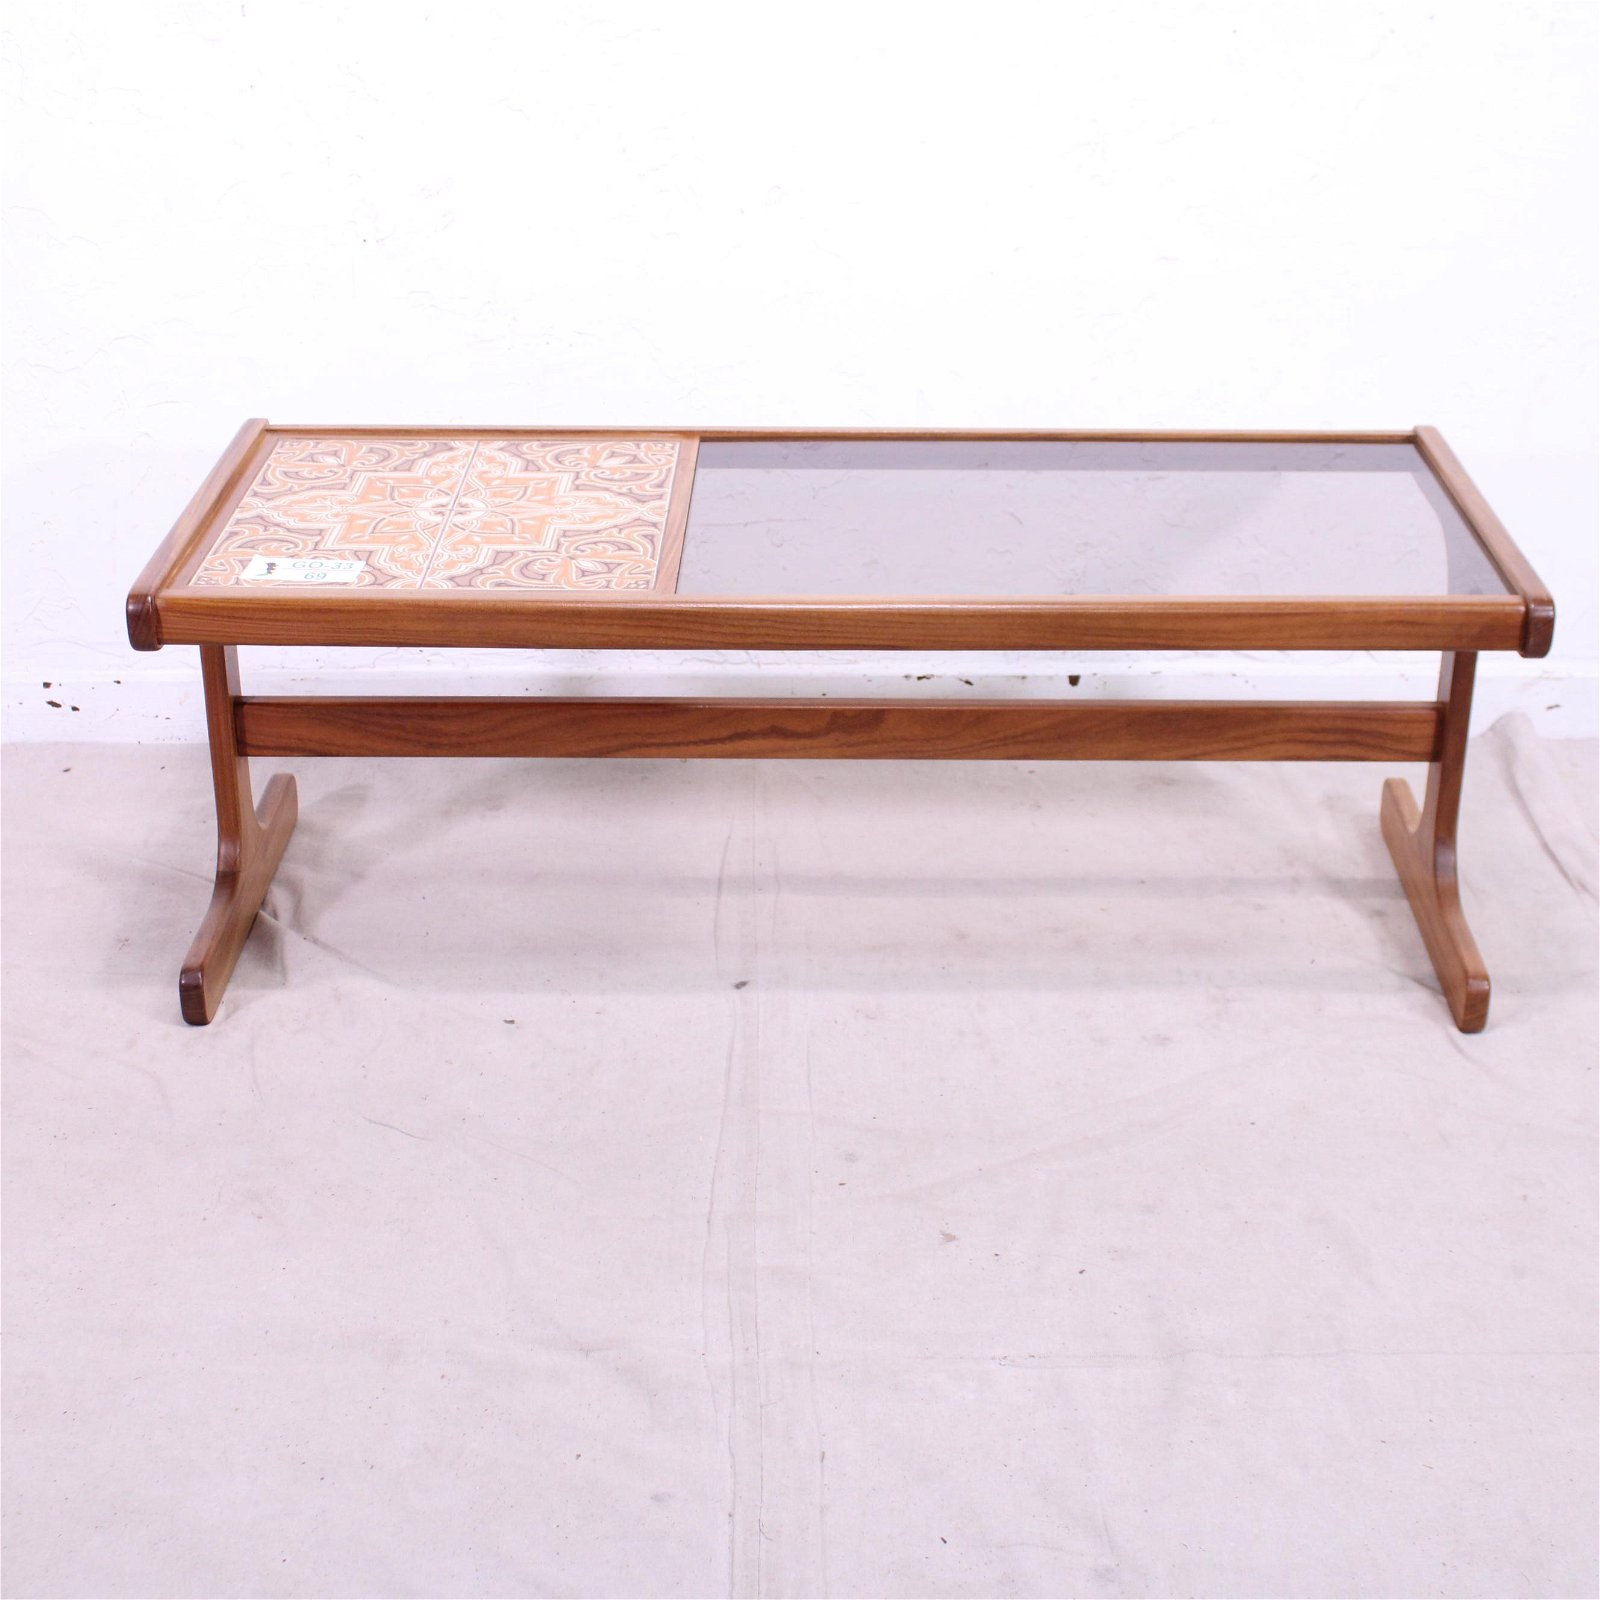 Mid Century Modern Teak Coffee Table By G-Plan